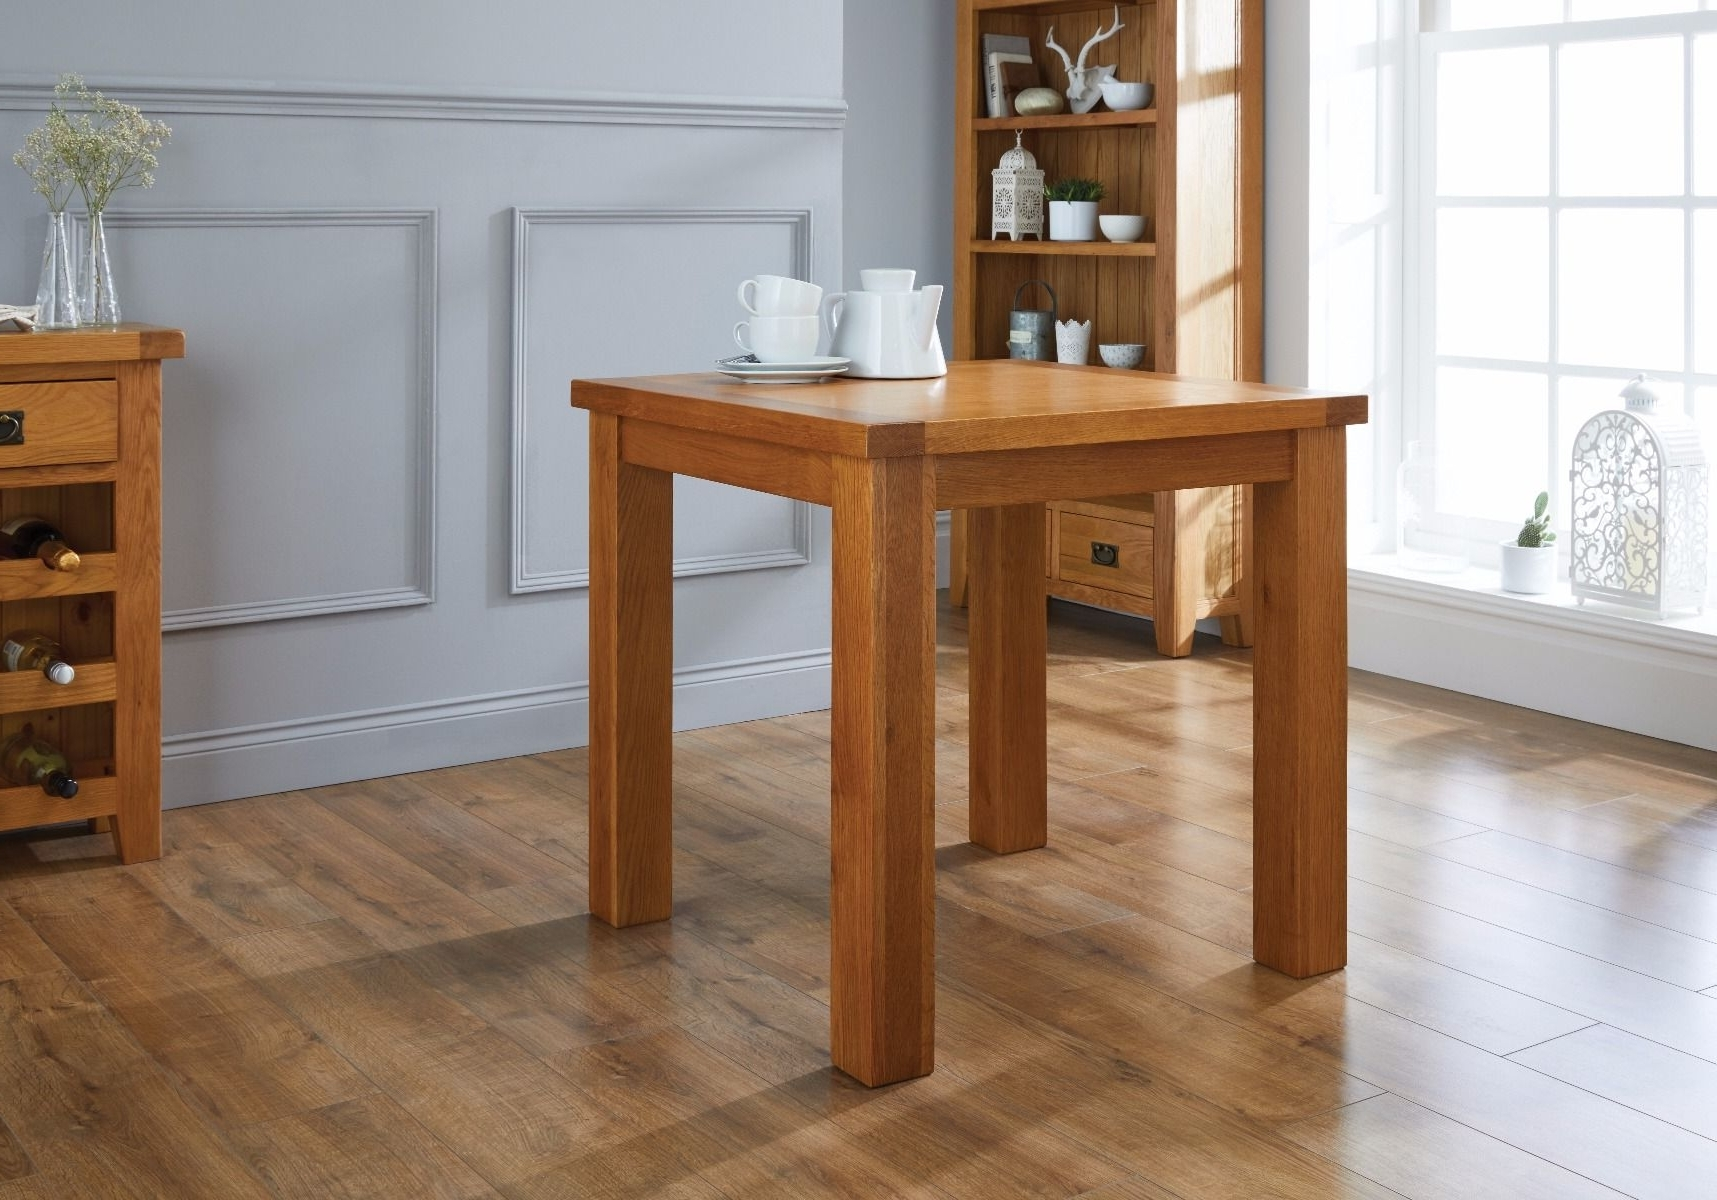 Fashionable Country Oak 80Cm Small Square Oak Dining Room Table With Regard To Square Oak Dining Tables (View 2 of 25)